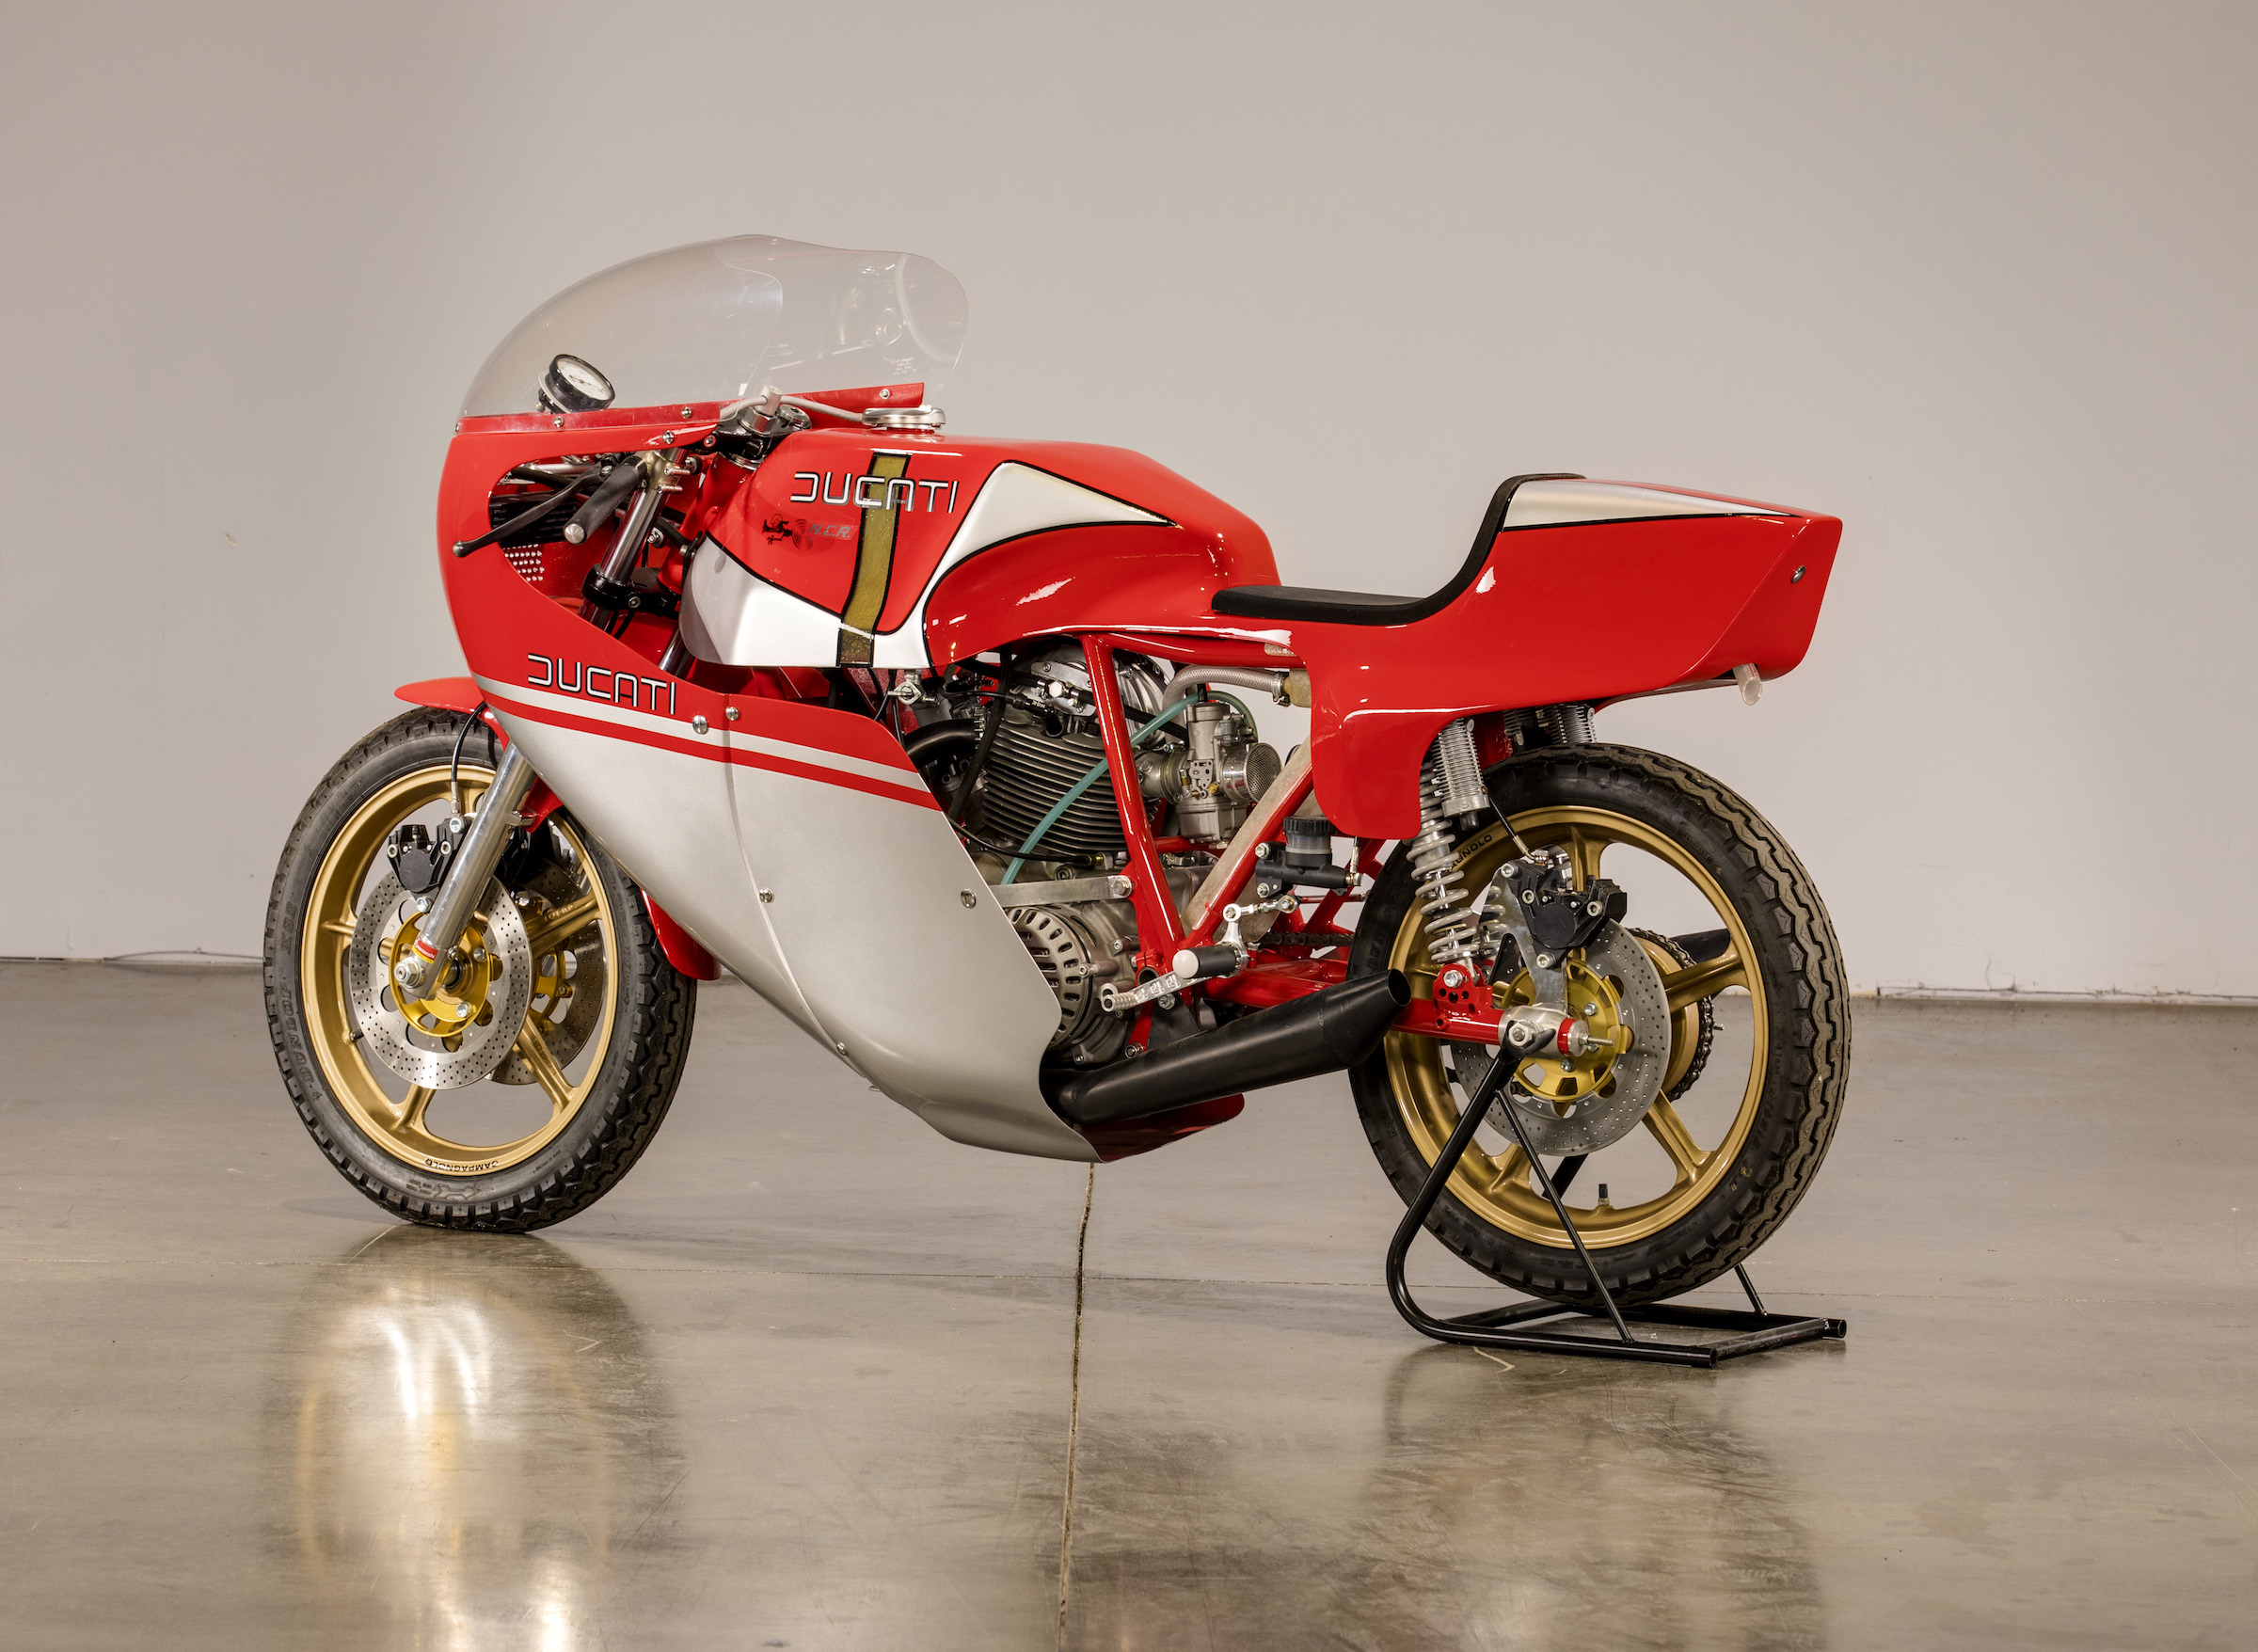 Ducati NCR 900 Racer - A Swedish-Built Italian Icon